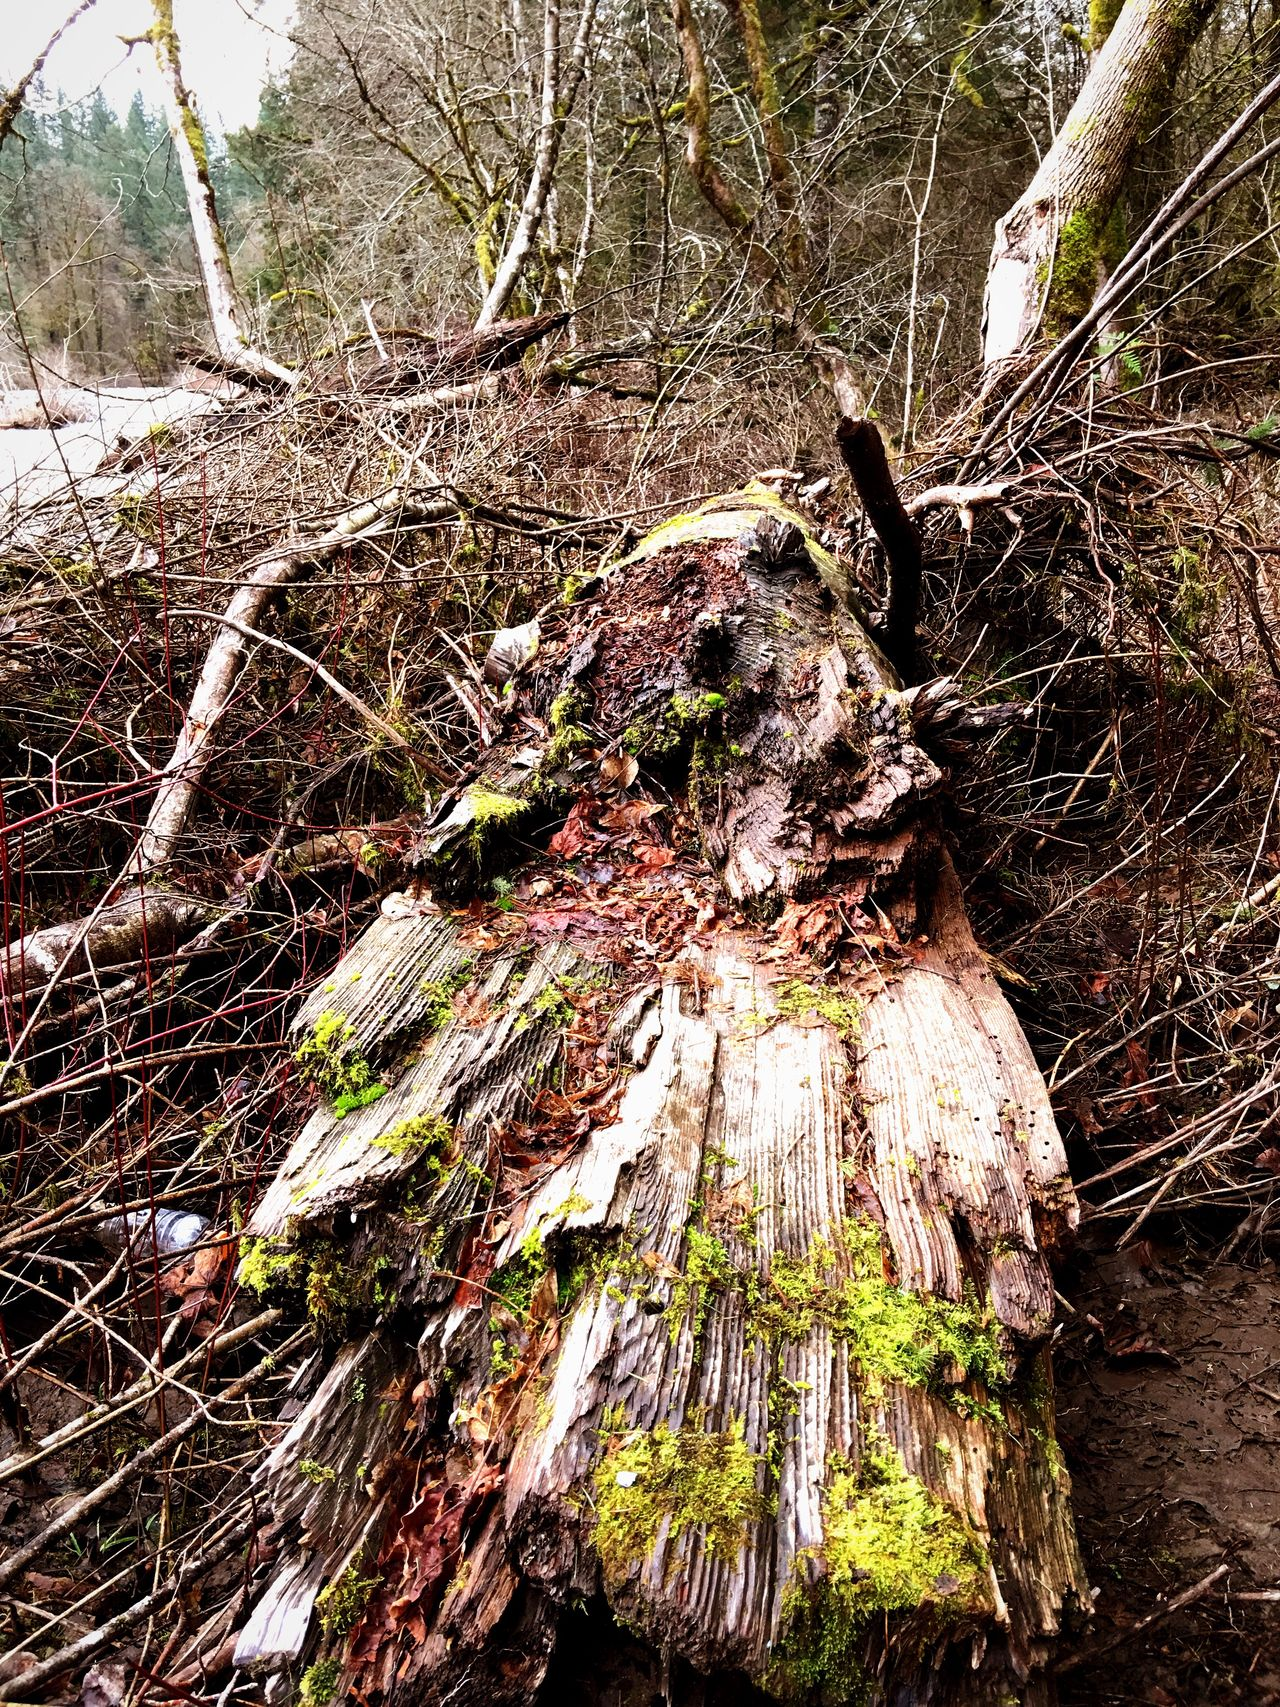 Tree Trunk Tree Forest Nature Wood - Material Textured  Outdoors No People Log Bark Tranquility Day Fallen Tree Root Deforestation Tree Stump Dead Tree Branch Close-up Woods Nature_collection Nature Photography Tree Trunk Trees And Nature Outdoor Pictures